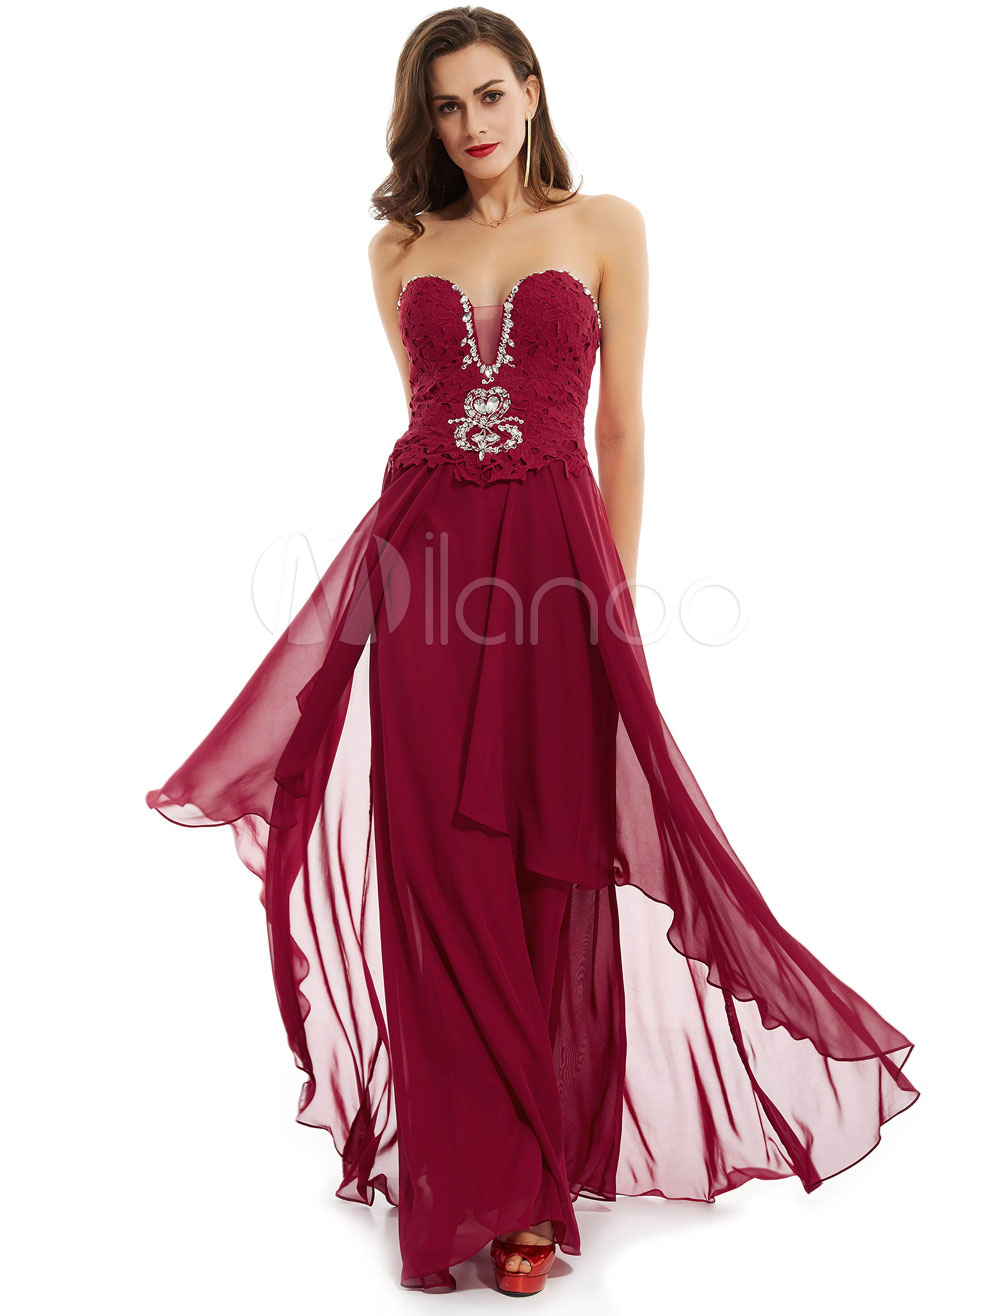 Buy Burgundy Prom Dresses Chiffon Lace Beading Sweetheart Neckline Ruffles Floor Length Formal Party Dress for $79.19 in Milanoo store